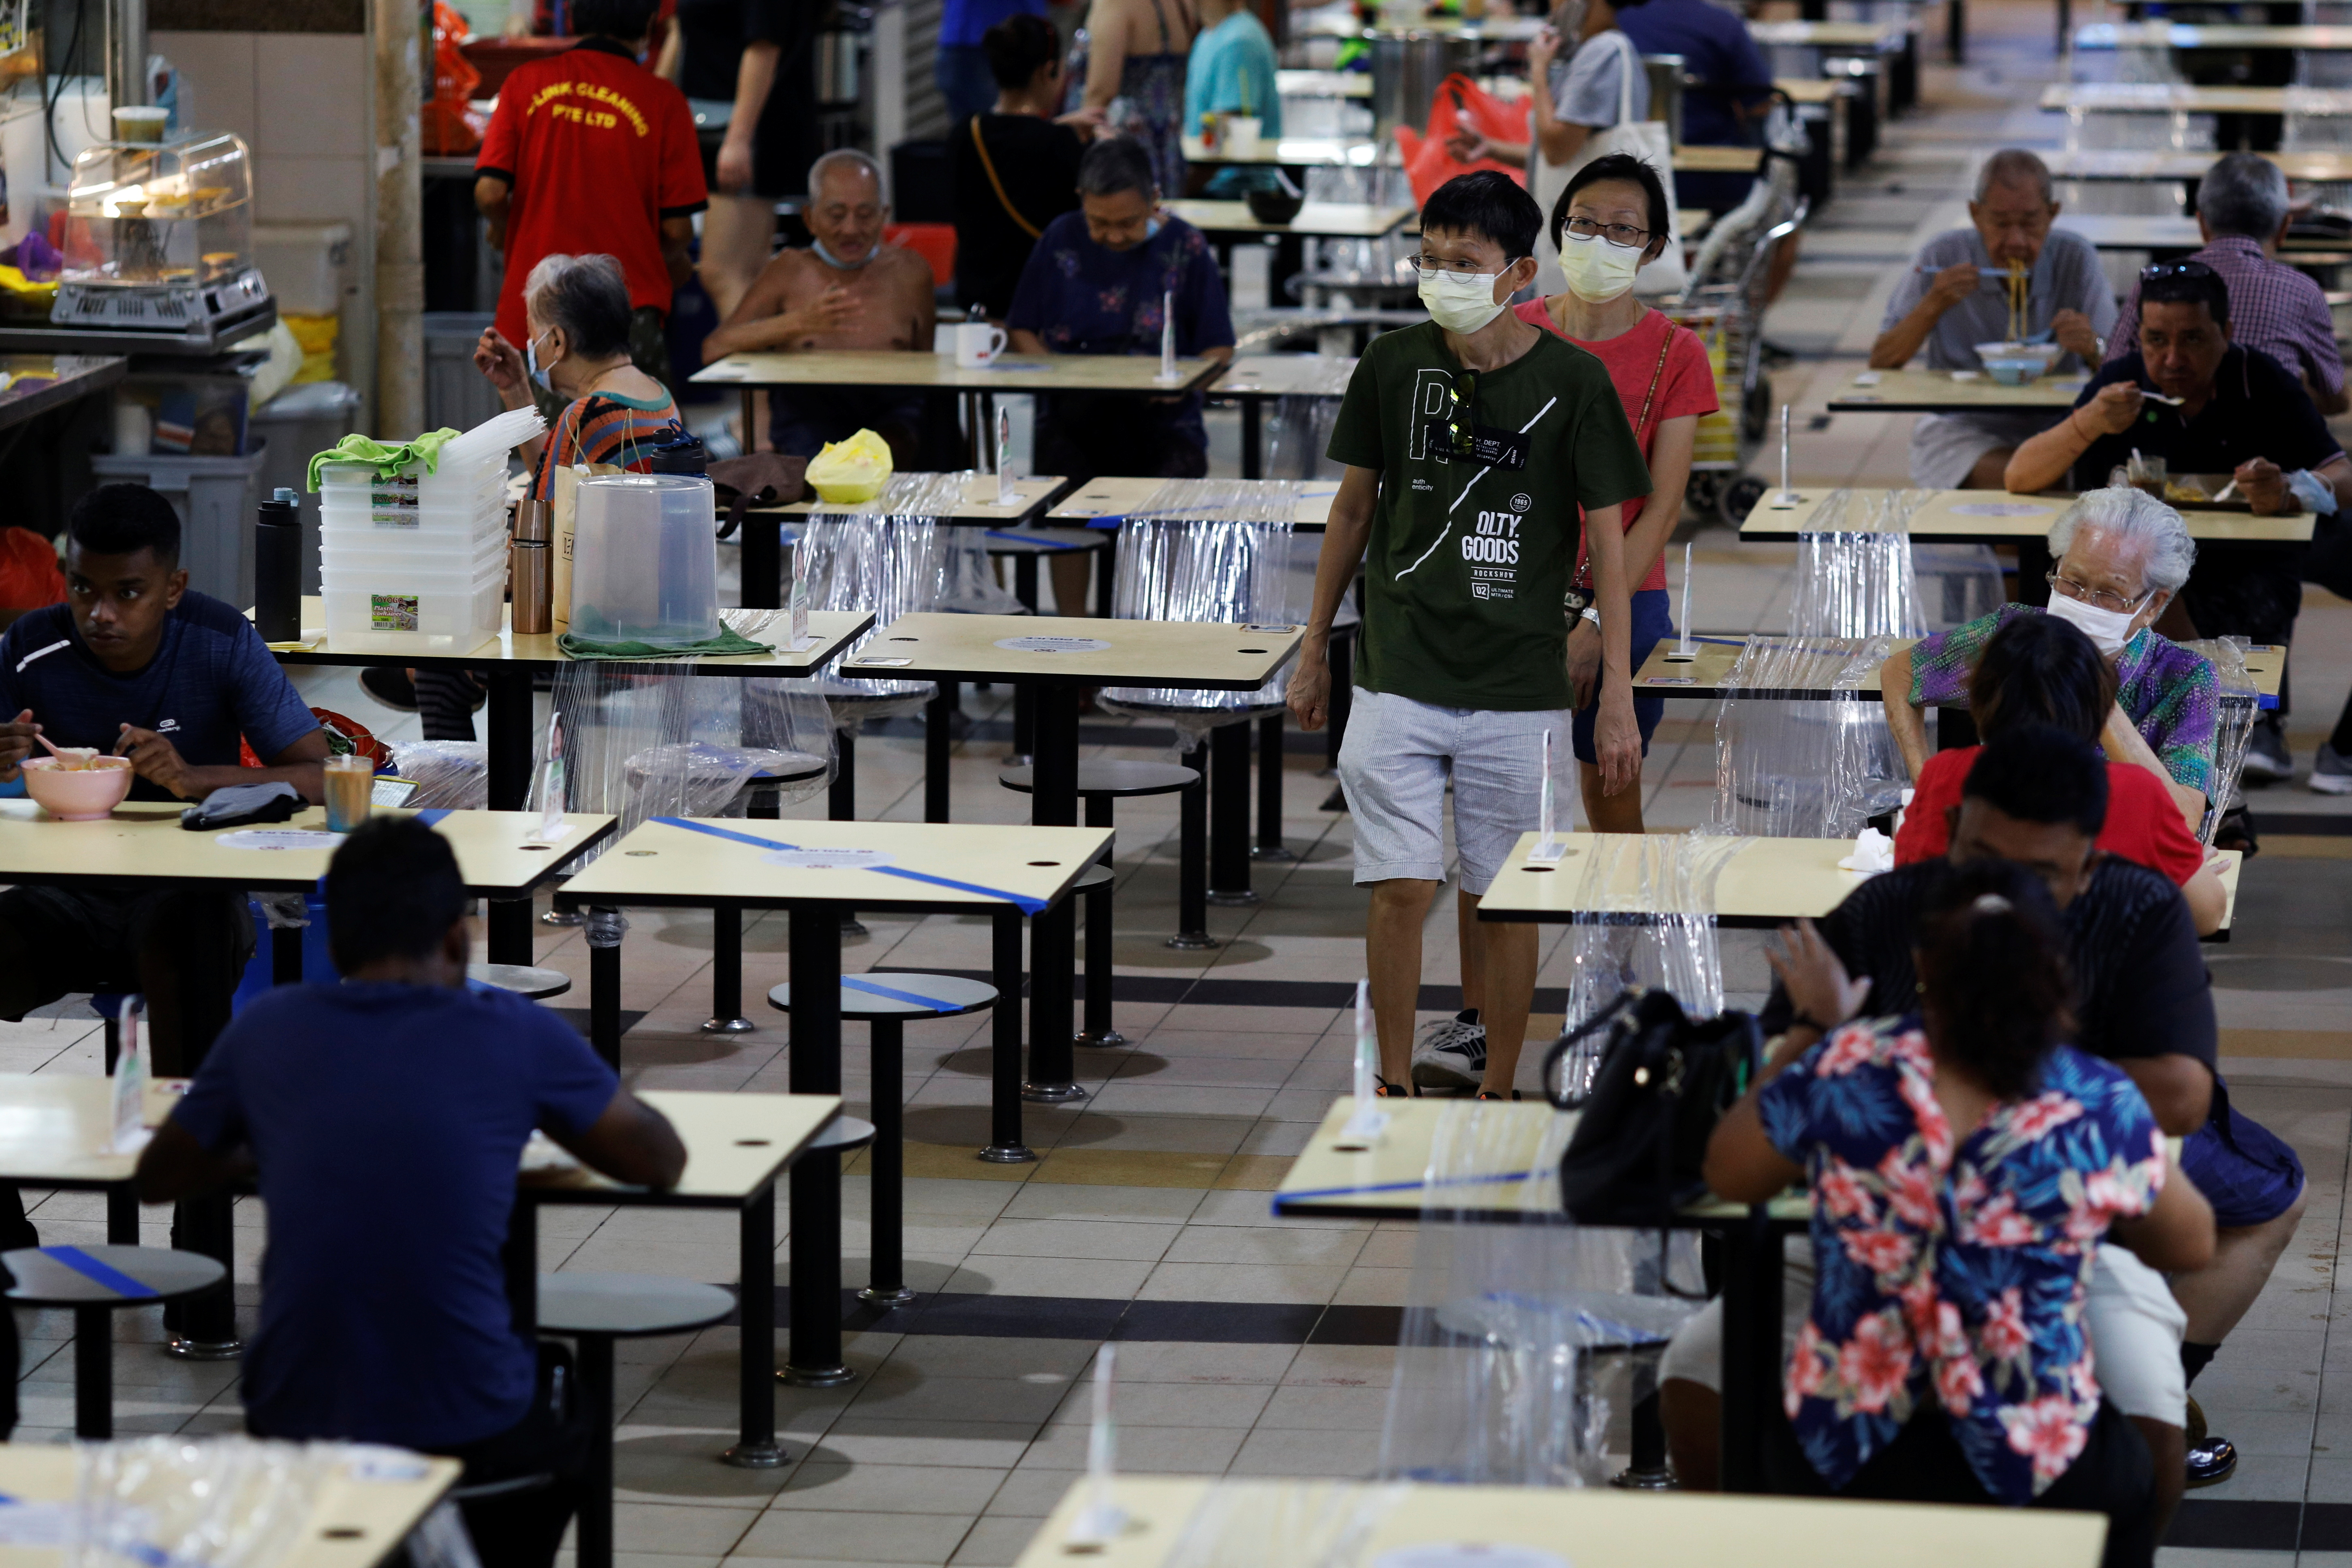 People eat at a hawker centre during the coronavirus disease (COVID-19) outbreak, in Singapore September 21, 2021. REUTERS/Edgar Su